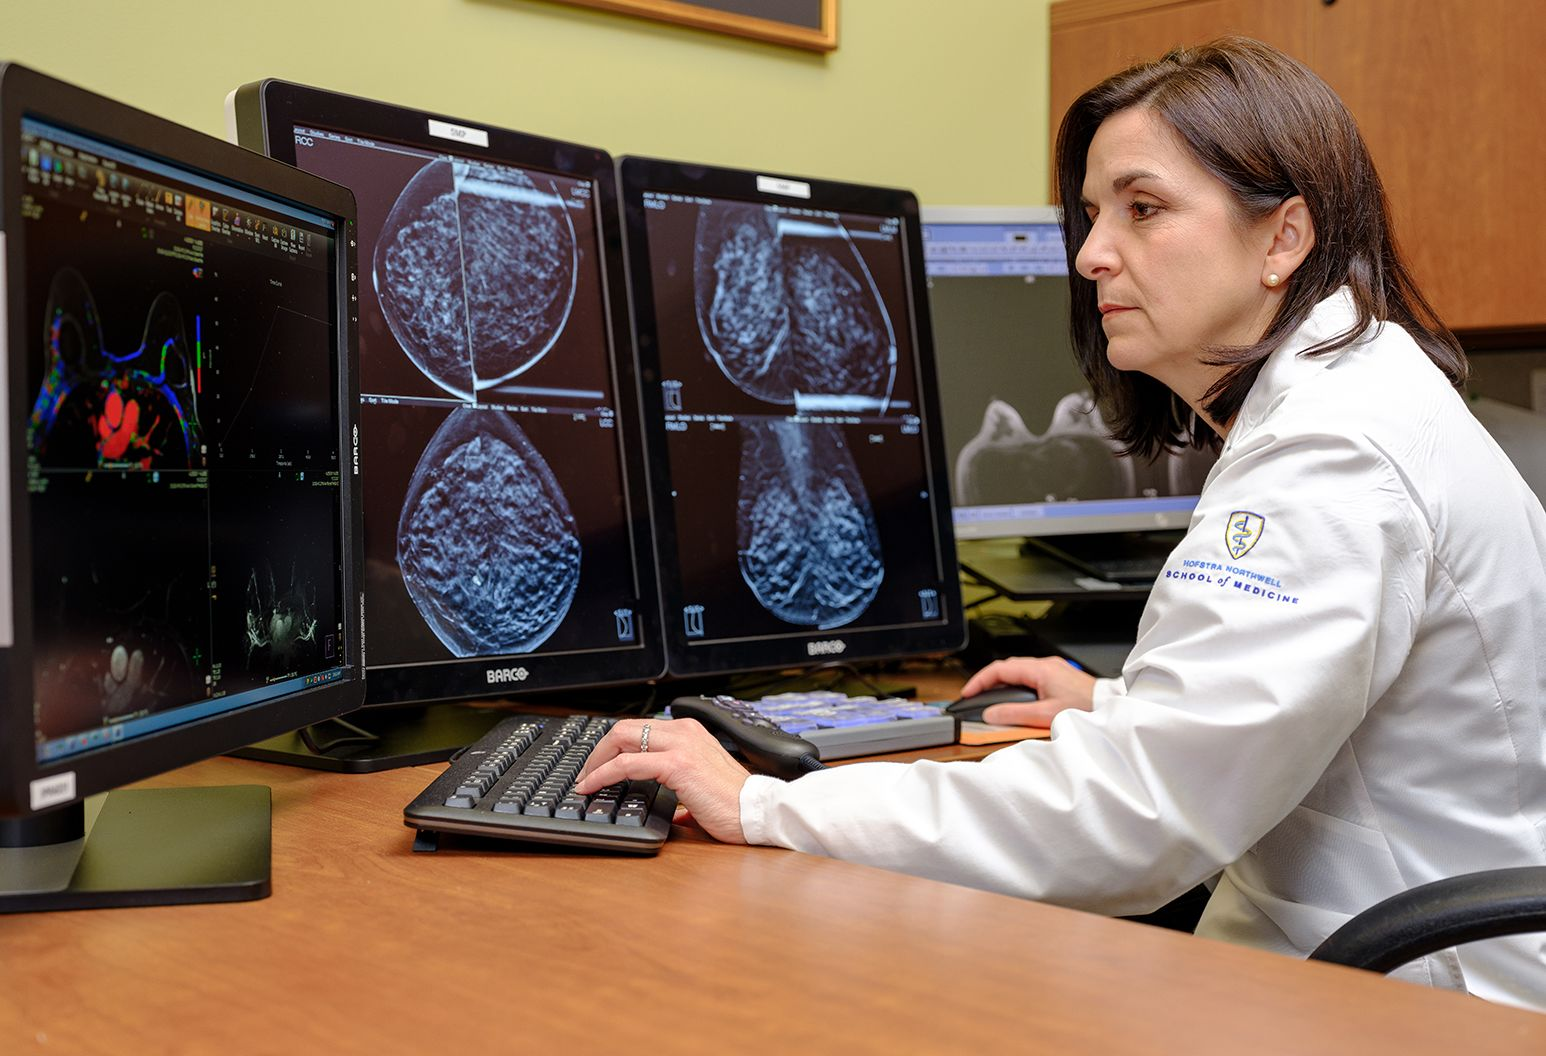 Female doctor wearing white lab coat is sitting at a desk with 3 computer monitors that all have images of medical  scans of the breast